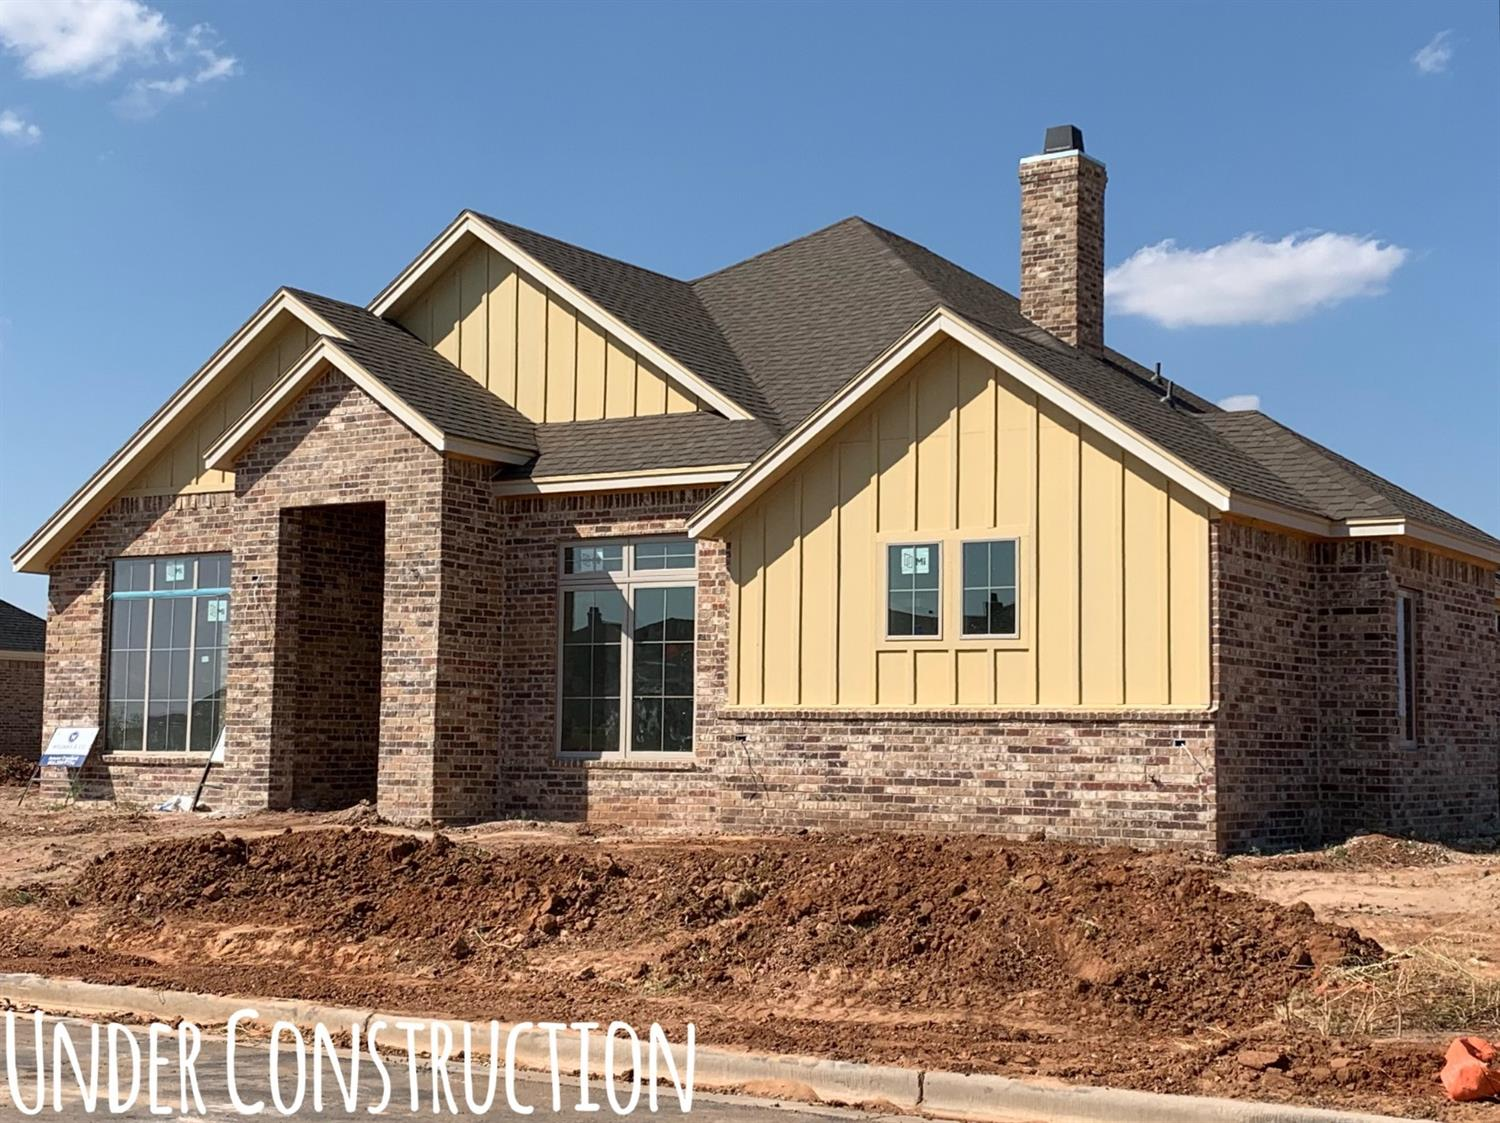 This new construction home located in Kelsey Park Enclave built by the craftsmen at Flatland Homes by Trey Strong is sure to meet all your needs. This open concept home has 4 bedrooms, 3 bathrooms, and a 2 car garage. The bonus room above the garage is perfect for a kids room, office, or a place to watch the game. The Enclave at Kelsey Park is a beautiful subdivision with walking trails, an 80+ acre park and close access to all of south Lubbock amenities. Call today to see this beautiful home and what finishing touches you can add to make it your home sweet home!